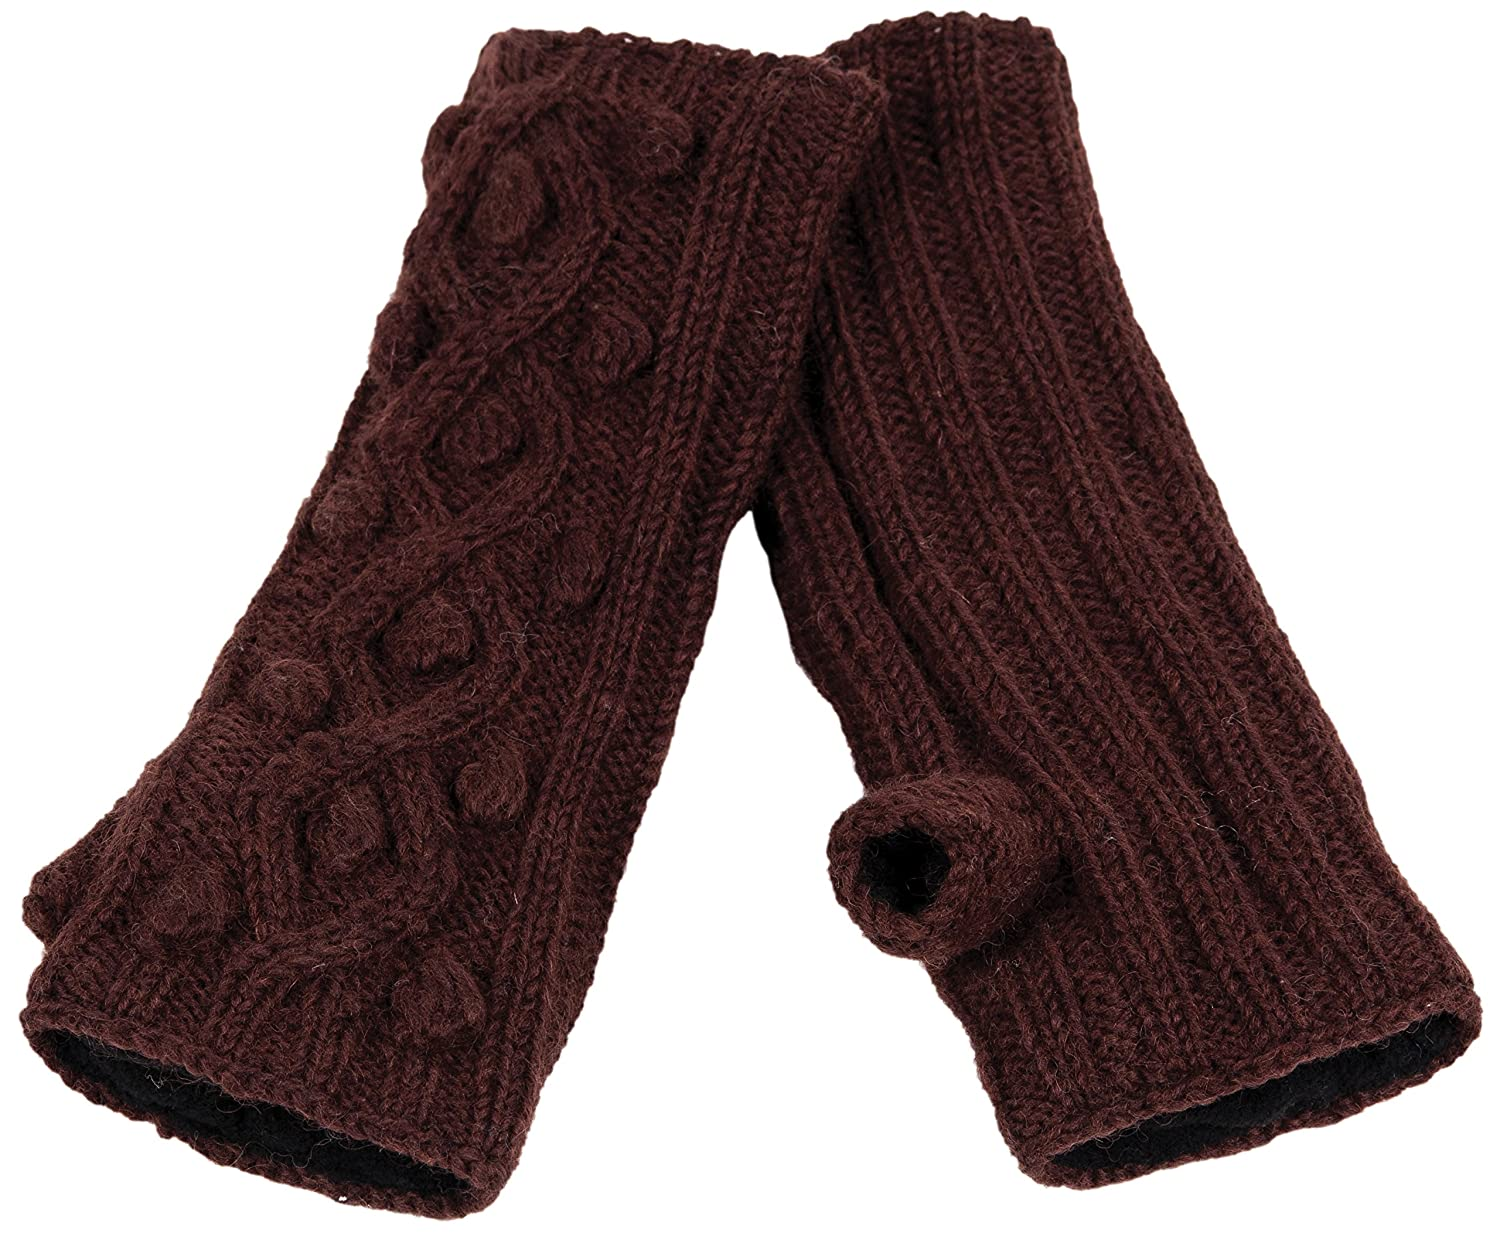 Nirvanna Designs MT70 Ball Knit Cable Hand Warmers